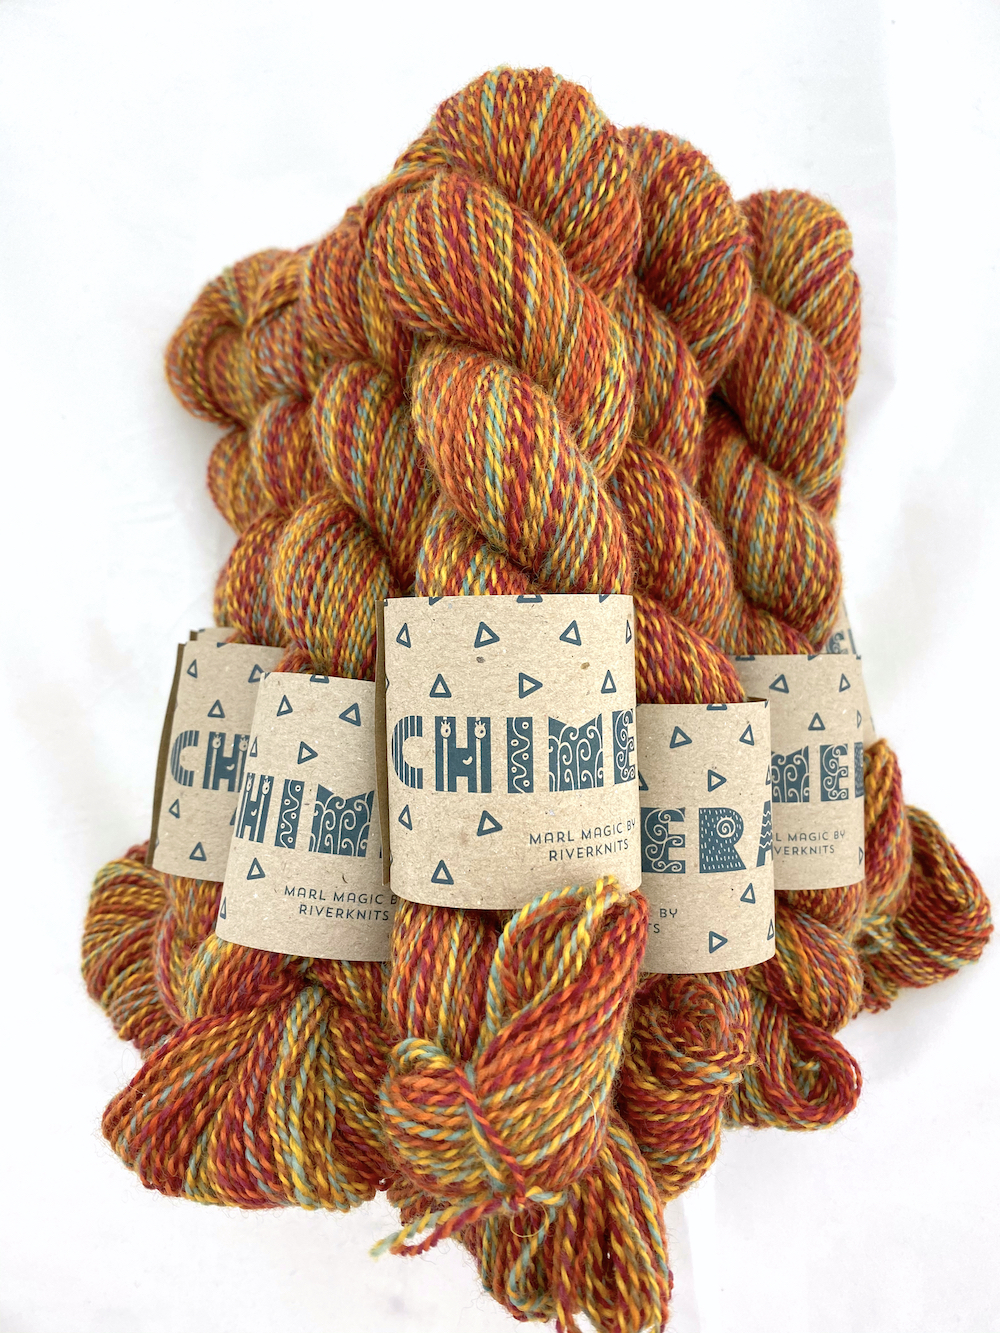 A pile of marled yarn in reds, oranges, gold, and a tiny bit of sage green.